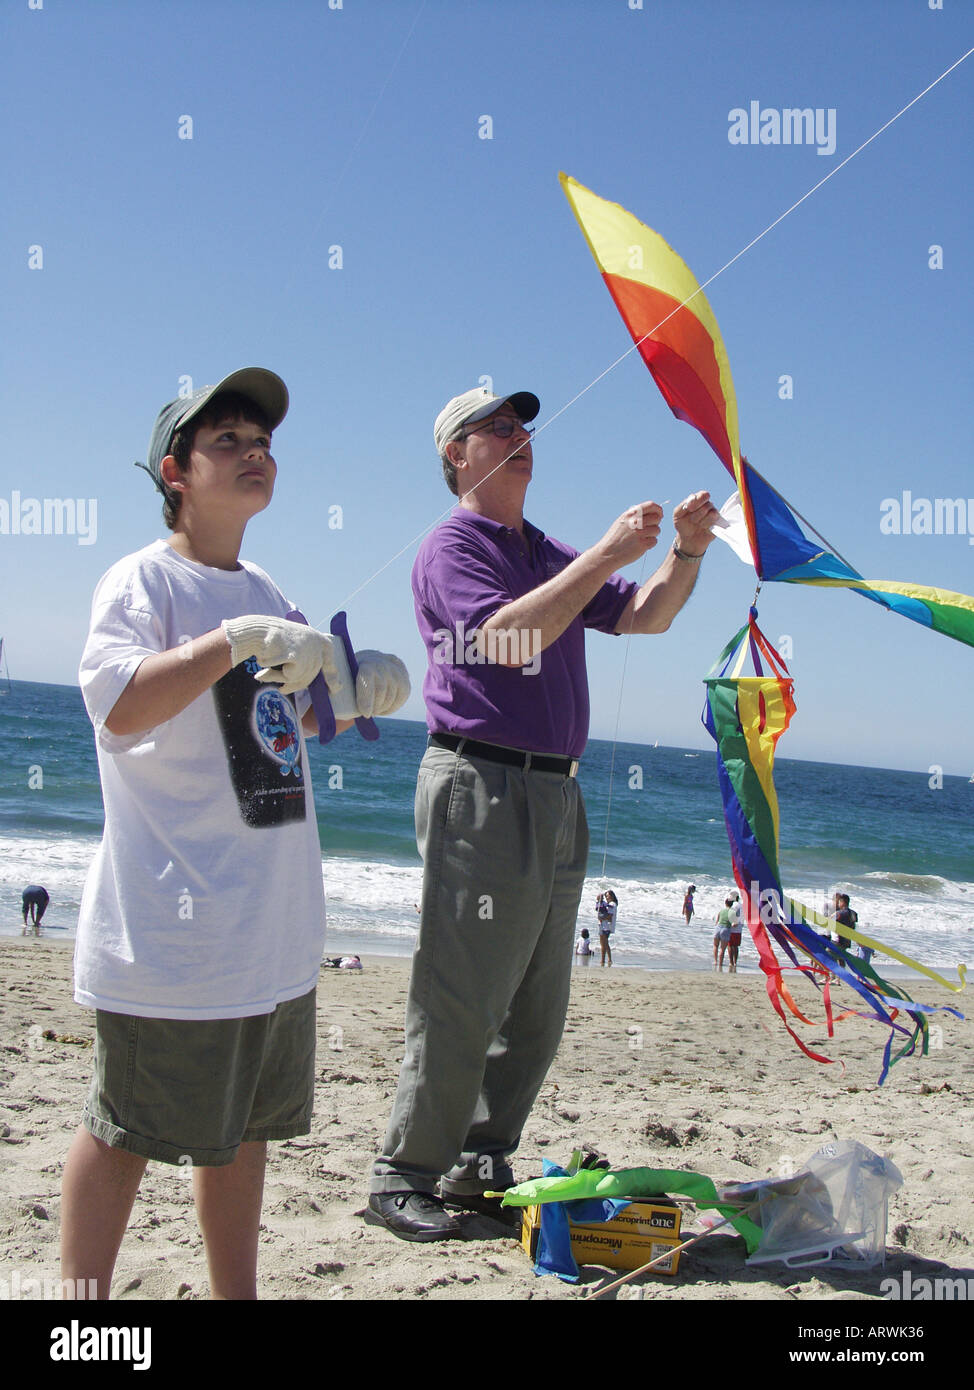 Father and son fly kites on Redondo Beach, CA. USA - Stock Image